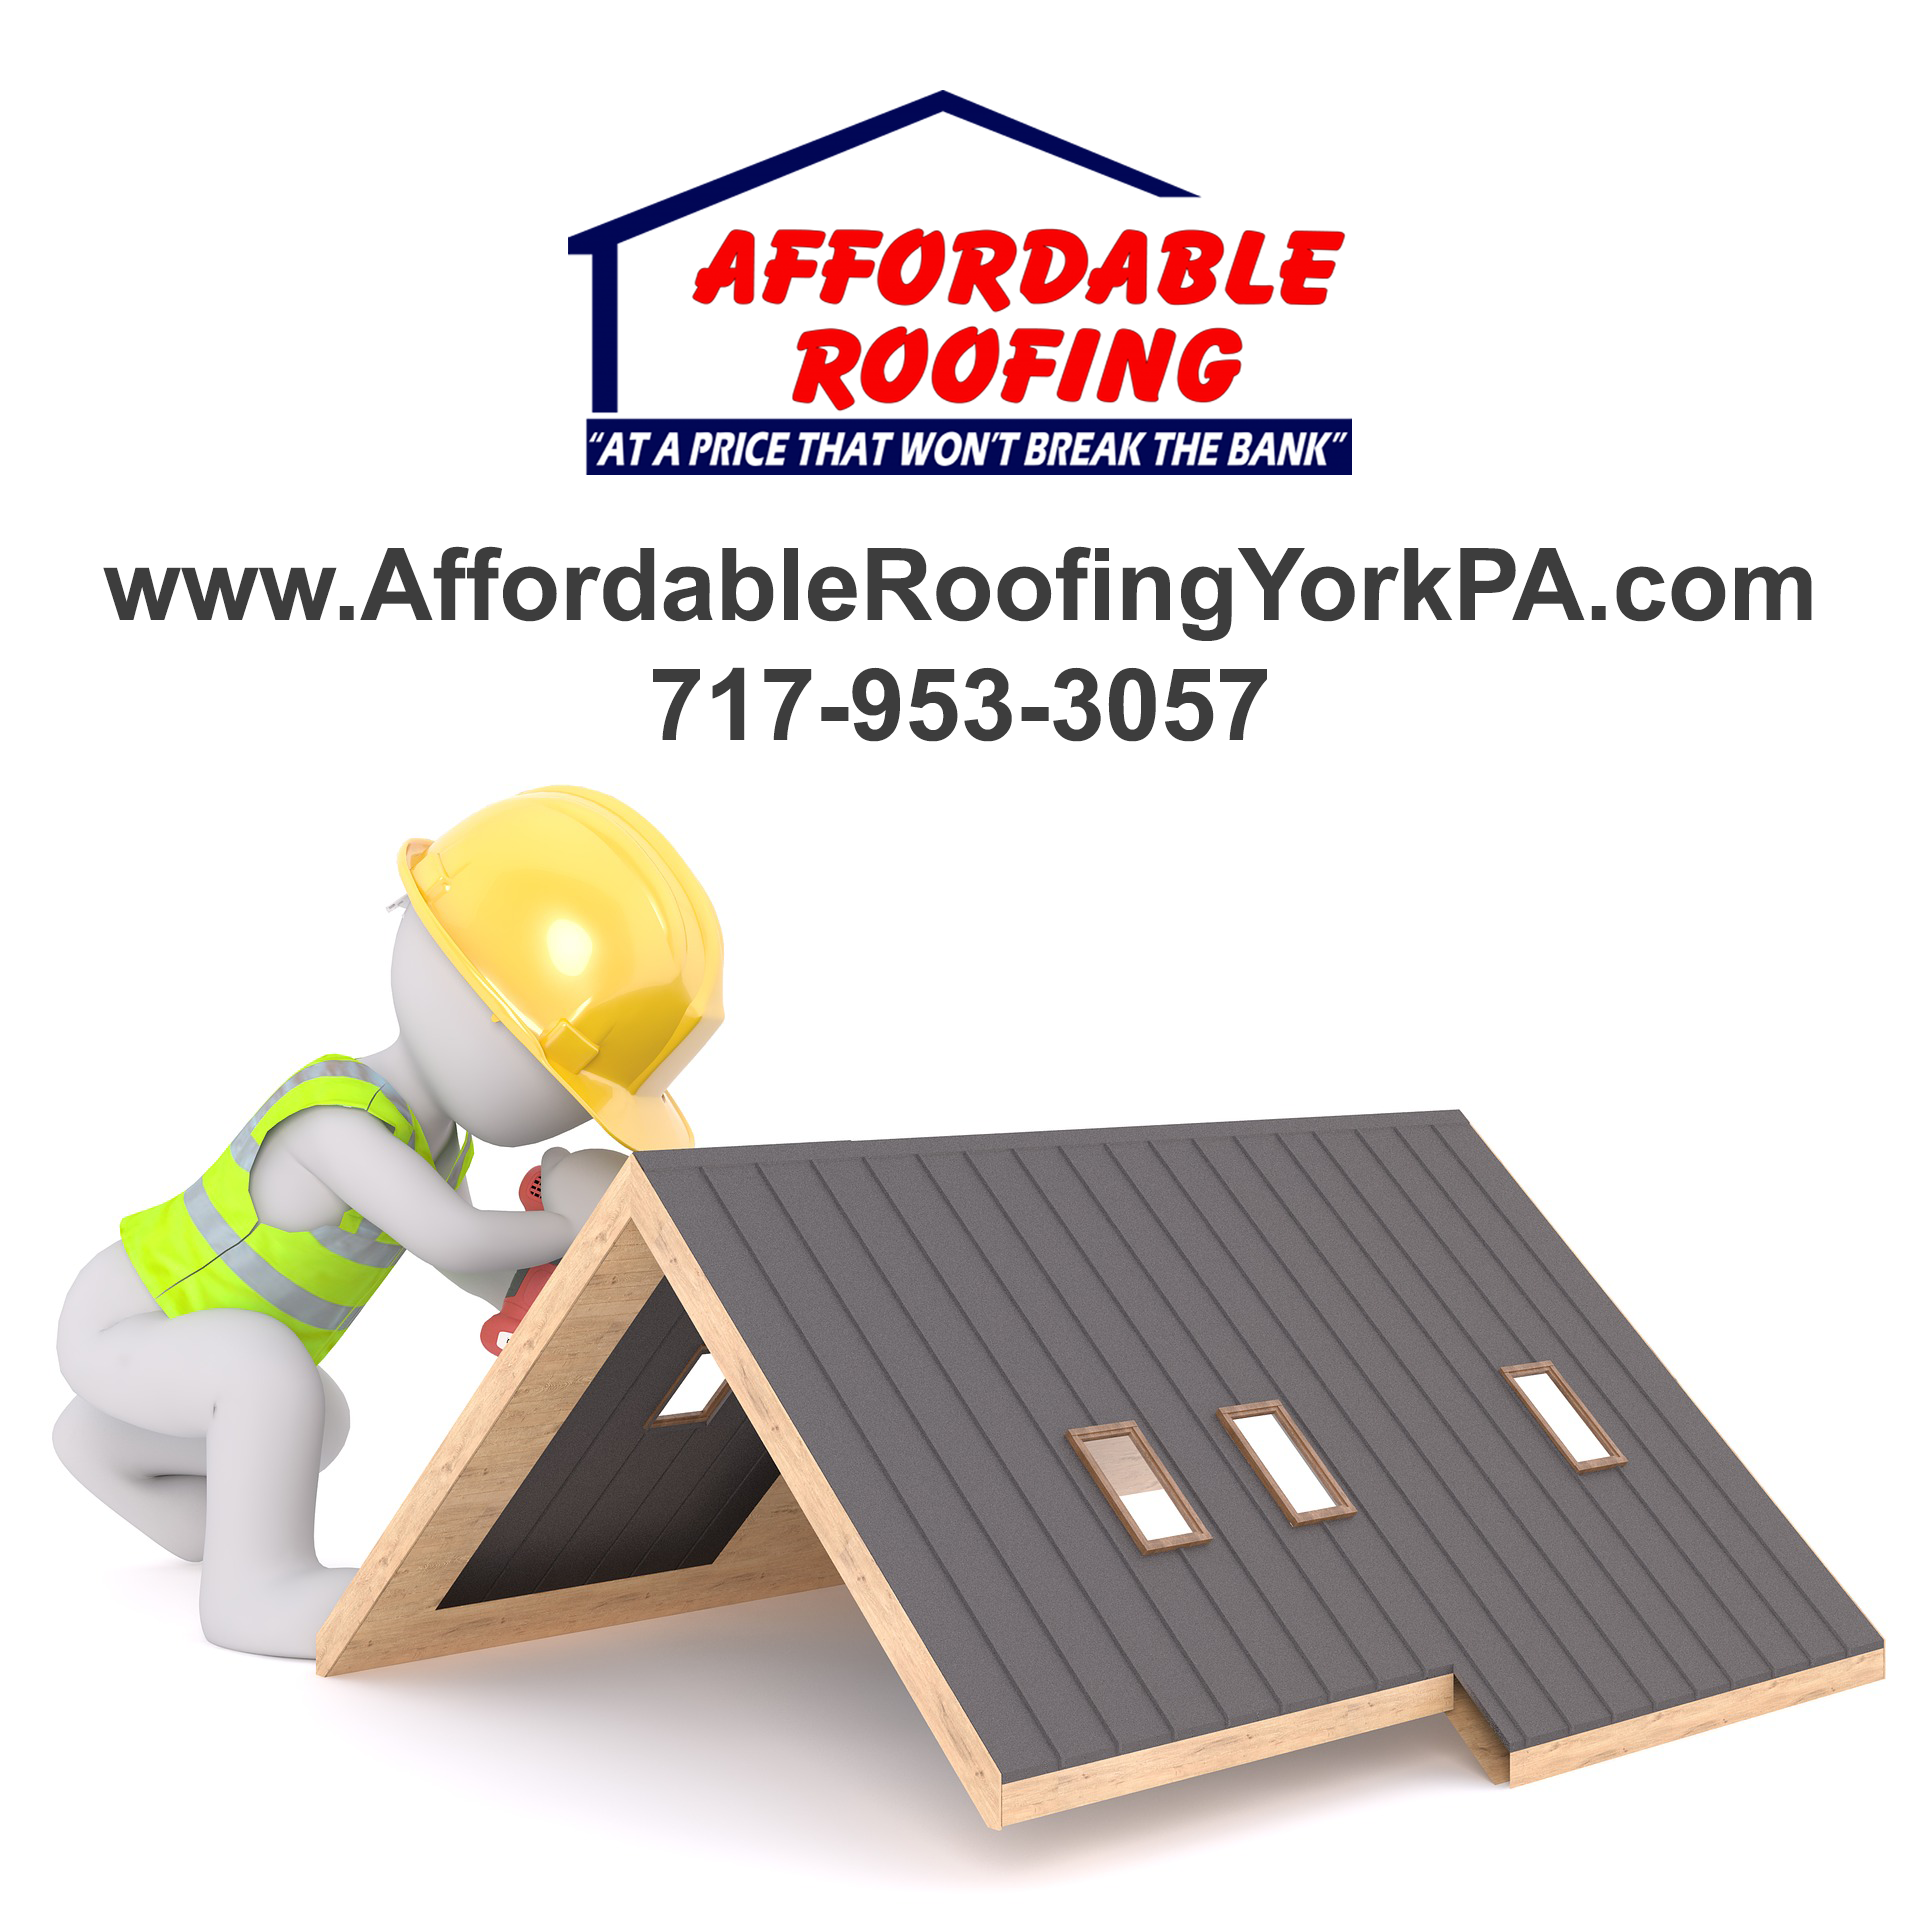 Trust York Pa Roofing Contractor Affordable Roofing For Your New Roof Installation Call 717 953 3057 Www Af Affordable Roofing Roof Installation Roofing